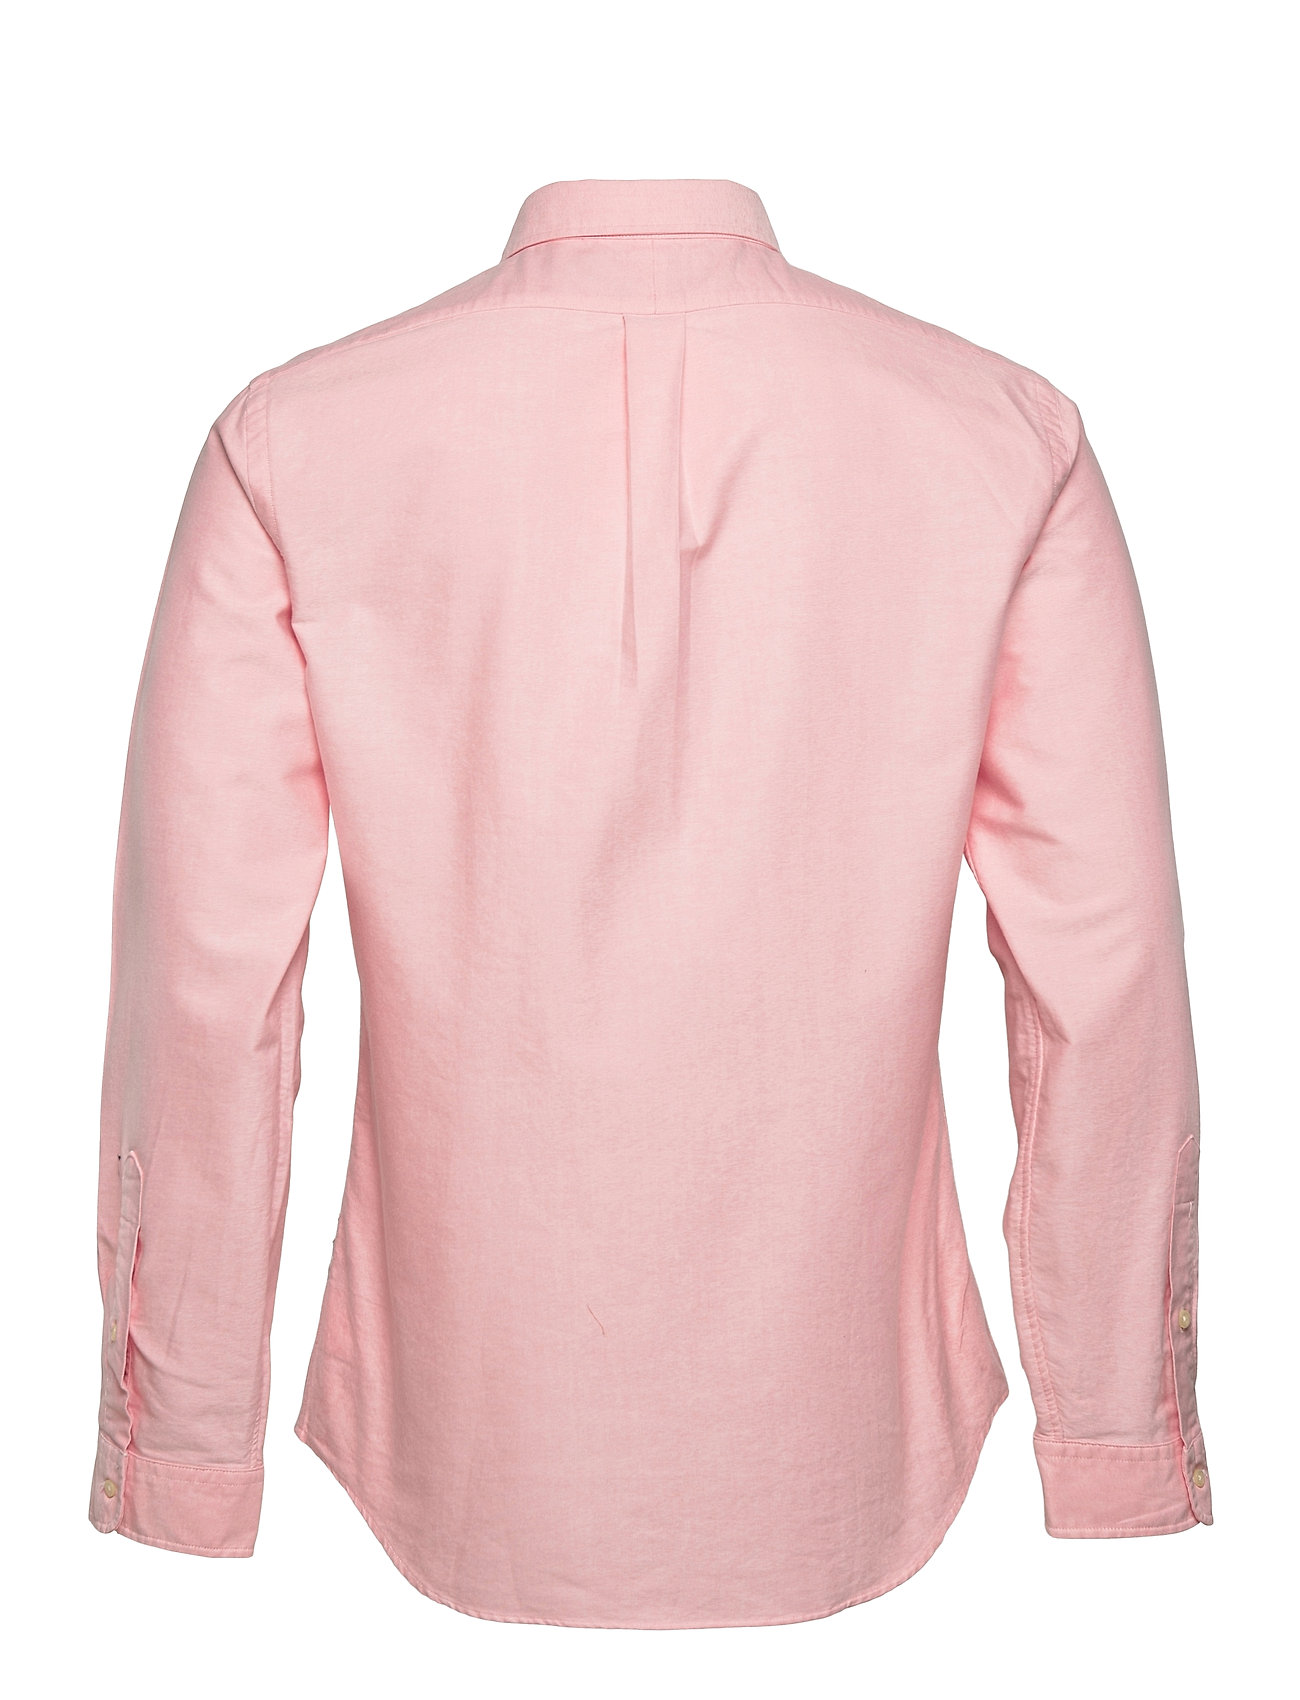 Cotton Lauren Oxford Fit PinkPolo Slim Shirtbsr Ralph sdthQxrCB